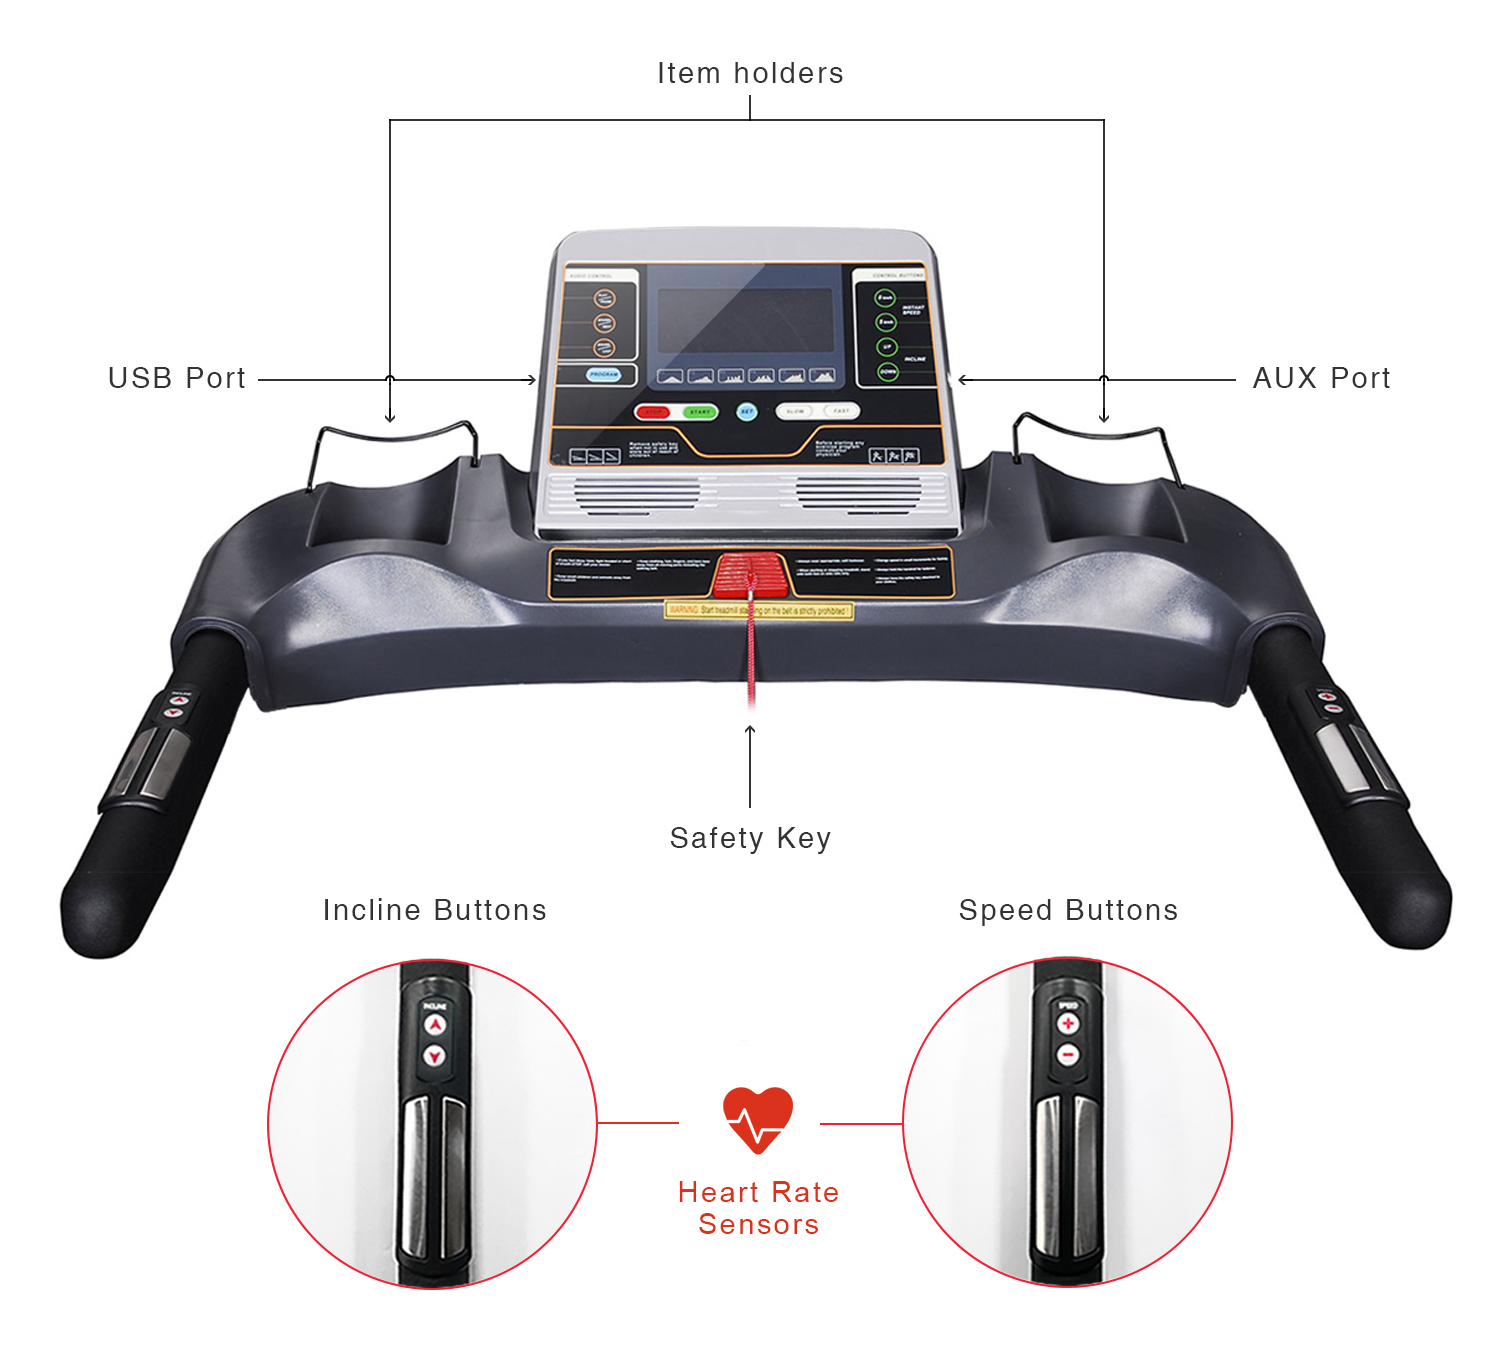 The S300 monitor features: speakers, AUX Port, USB Port, Safety Key tray and Heart Rate Sensors with Speed and Incline buttons